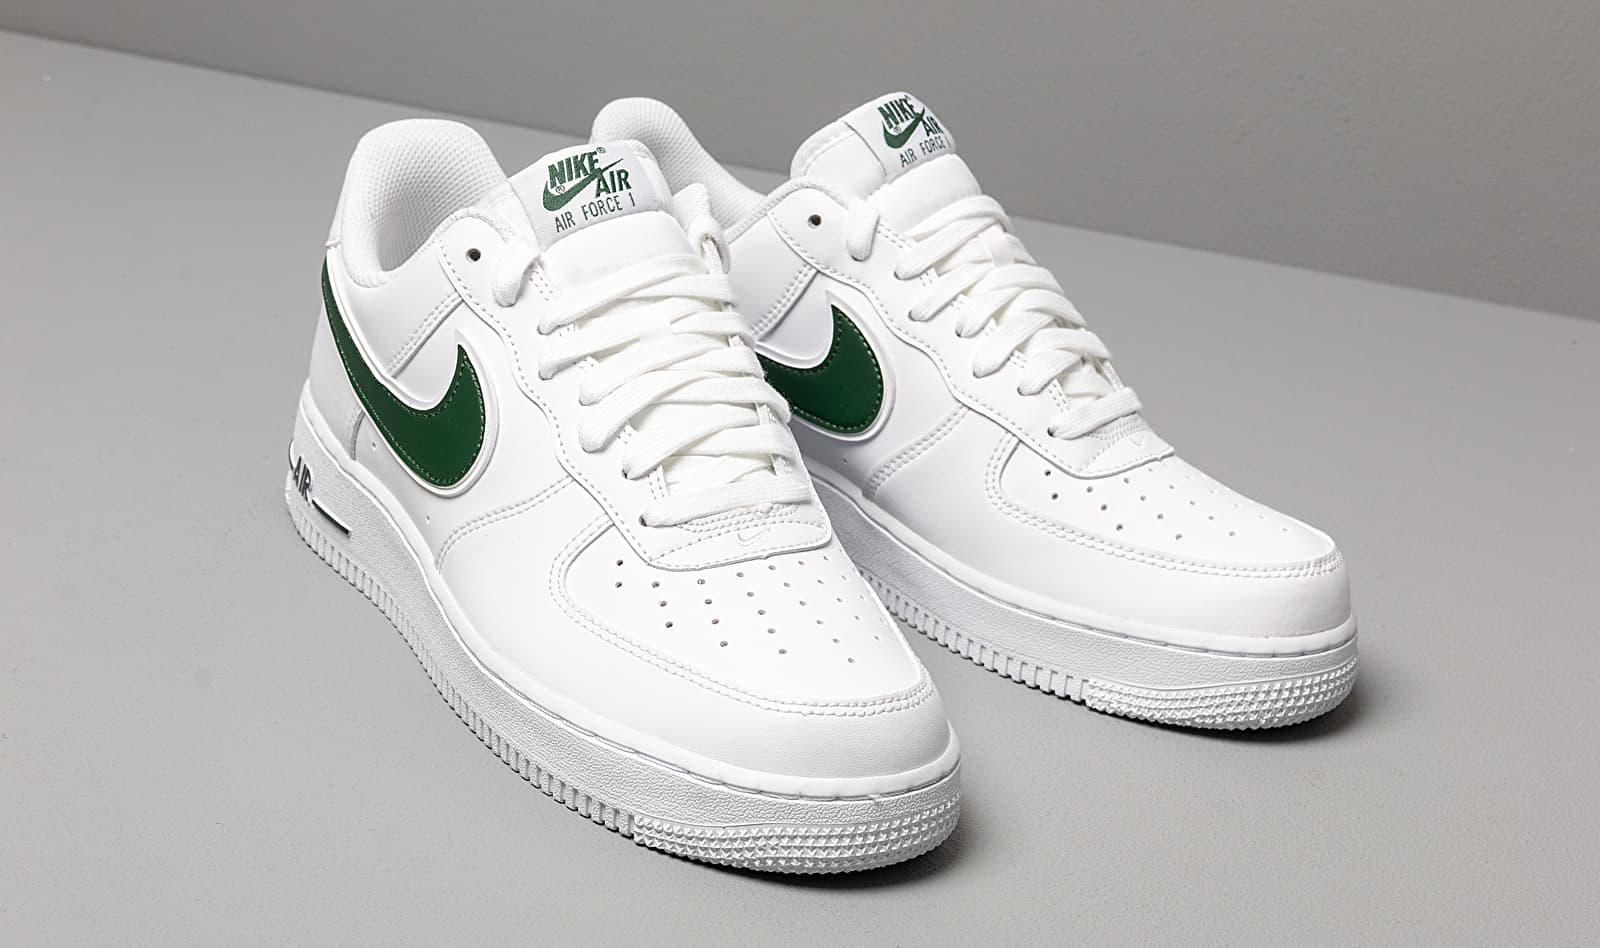 detailed look 87865 d72d7 Nike Air Force 1  07 3 White  Cosmic Bonsai in White for Men - Lyst